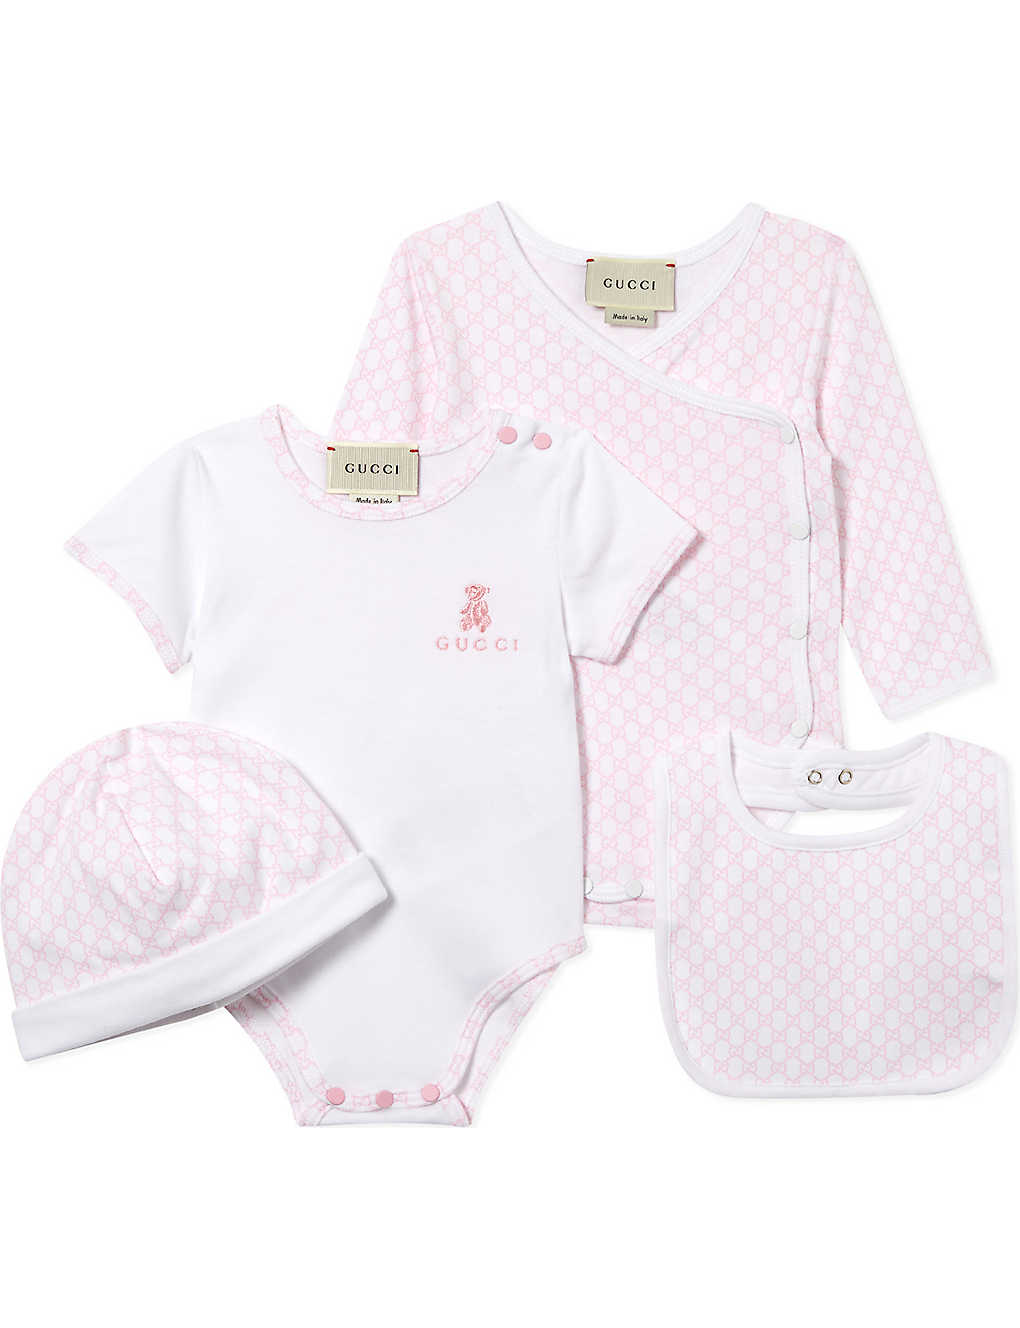 GUCCI - Baby cotton gift set 0-12 months  00681ce58e3f3